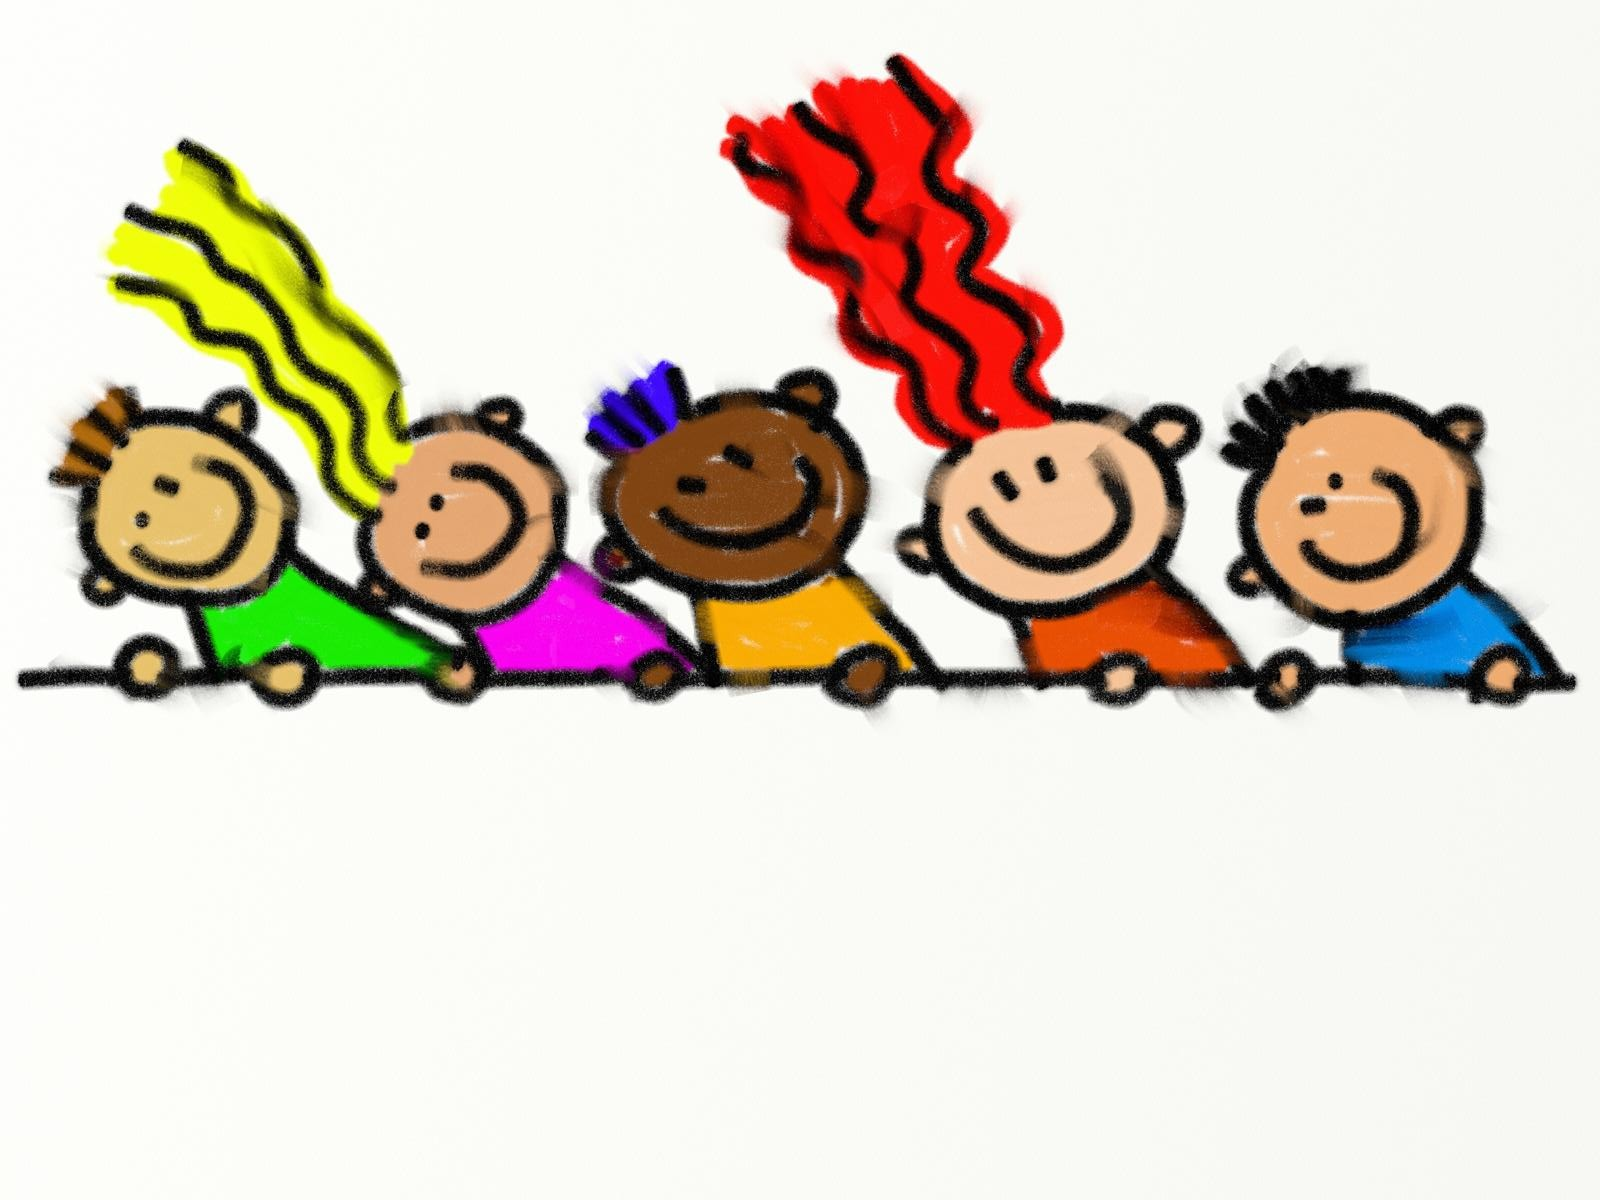 all lives matter. and all kids are special.  and what that means is sometimes we need to pay special attention.